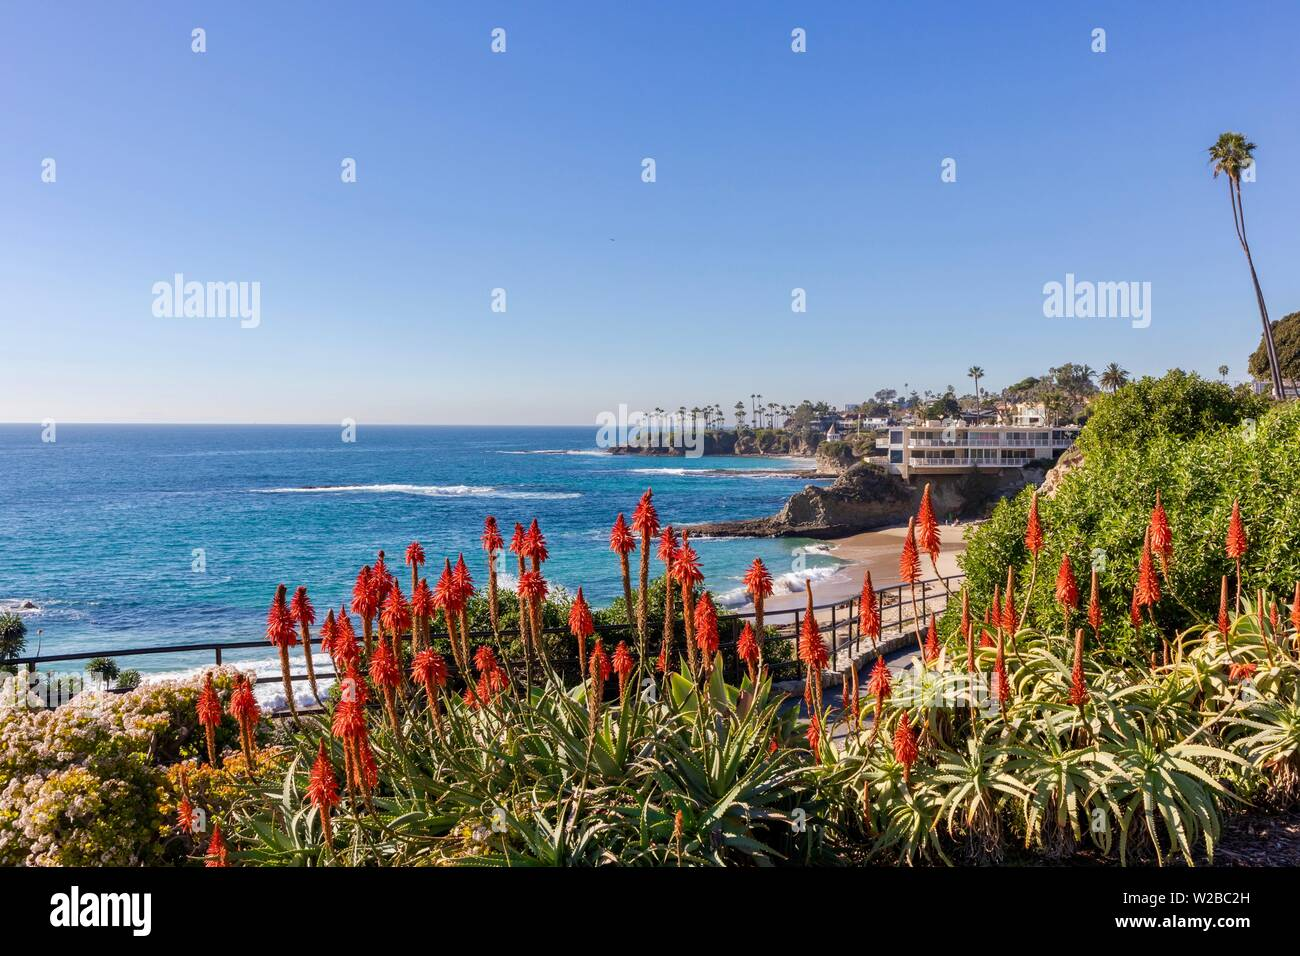 Laguna Beach Coastline in Orange County California - Stock Image